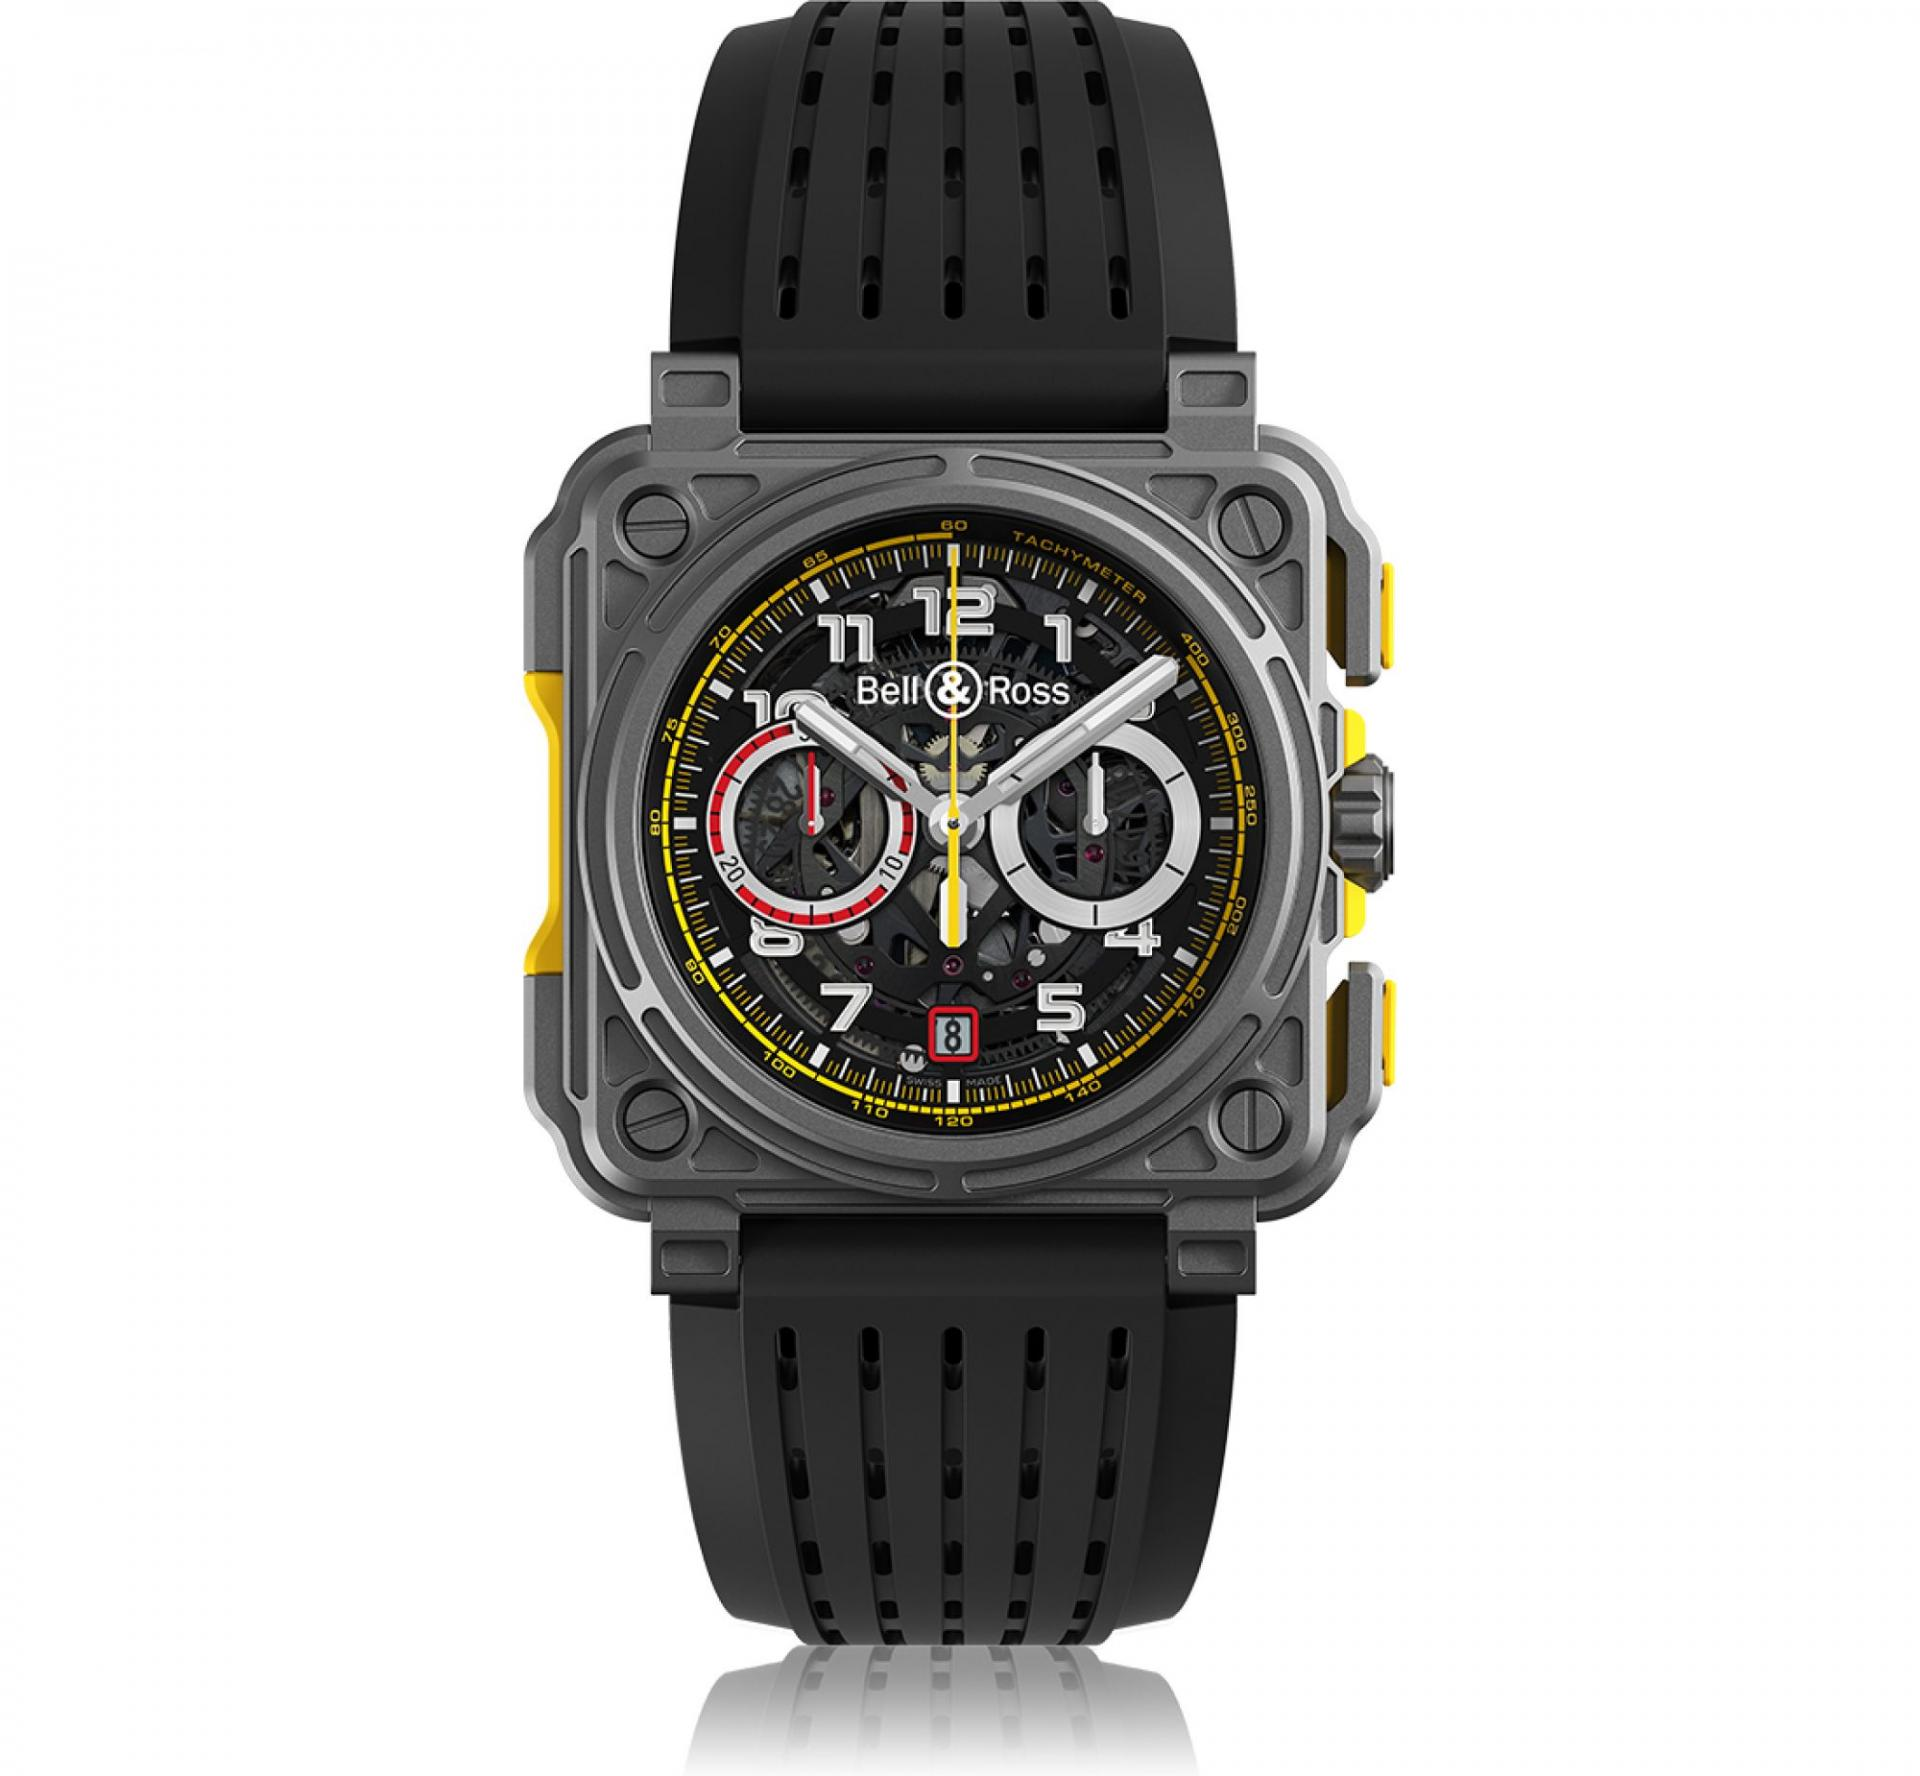 R.S.18 Chronograph, £16,900, Bell & Ross